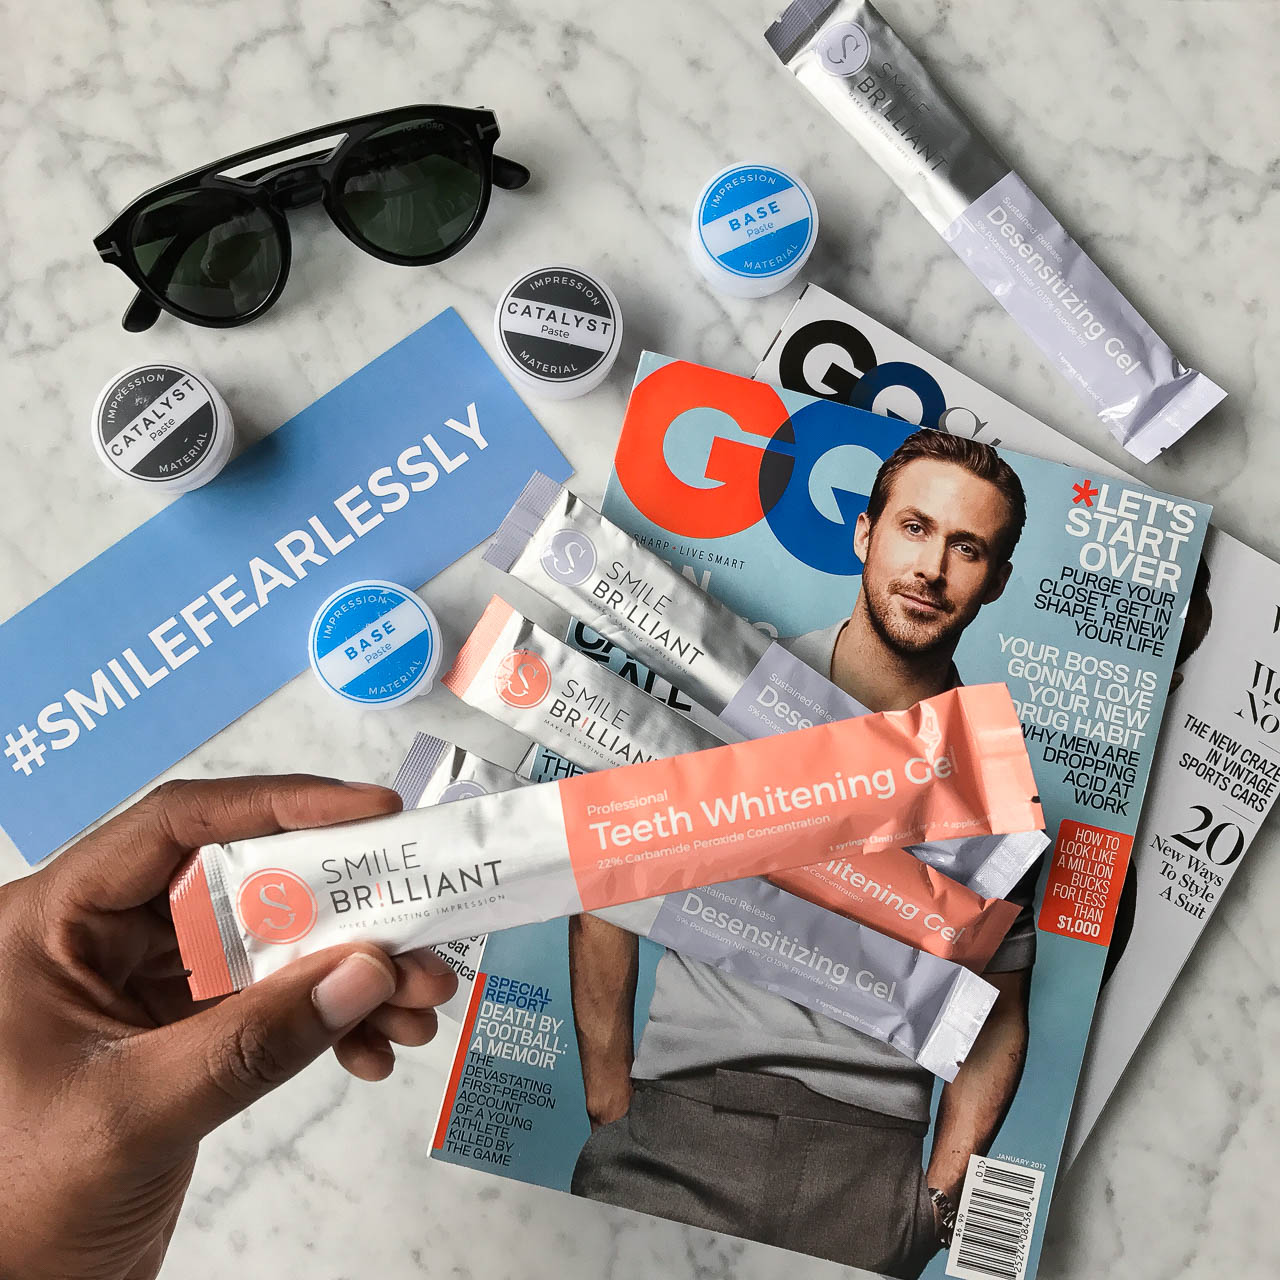 Teeth Whitening at Home   Smile Brilliant Giveaway